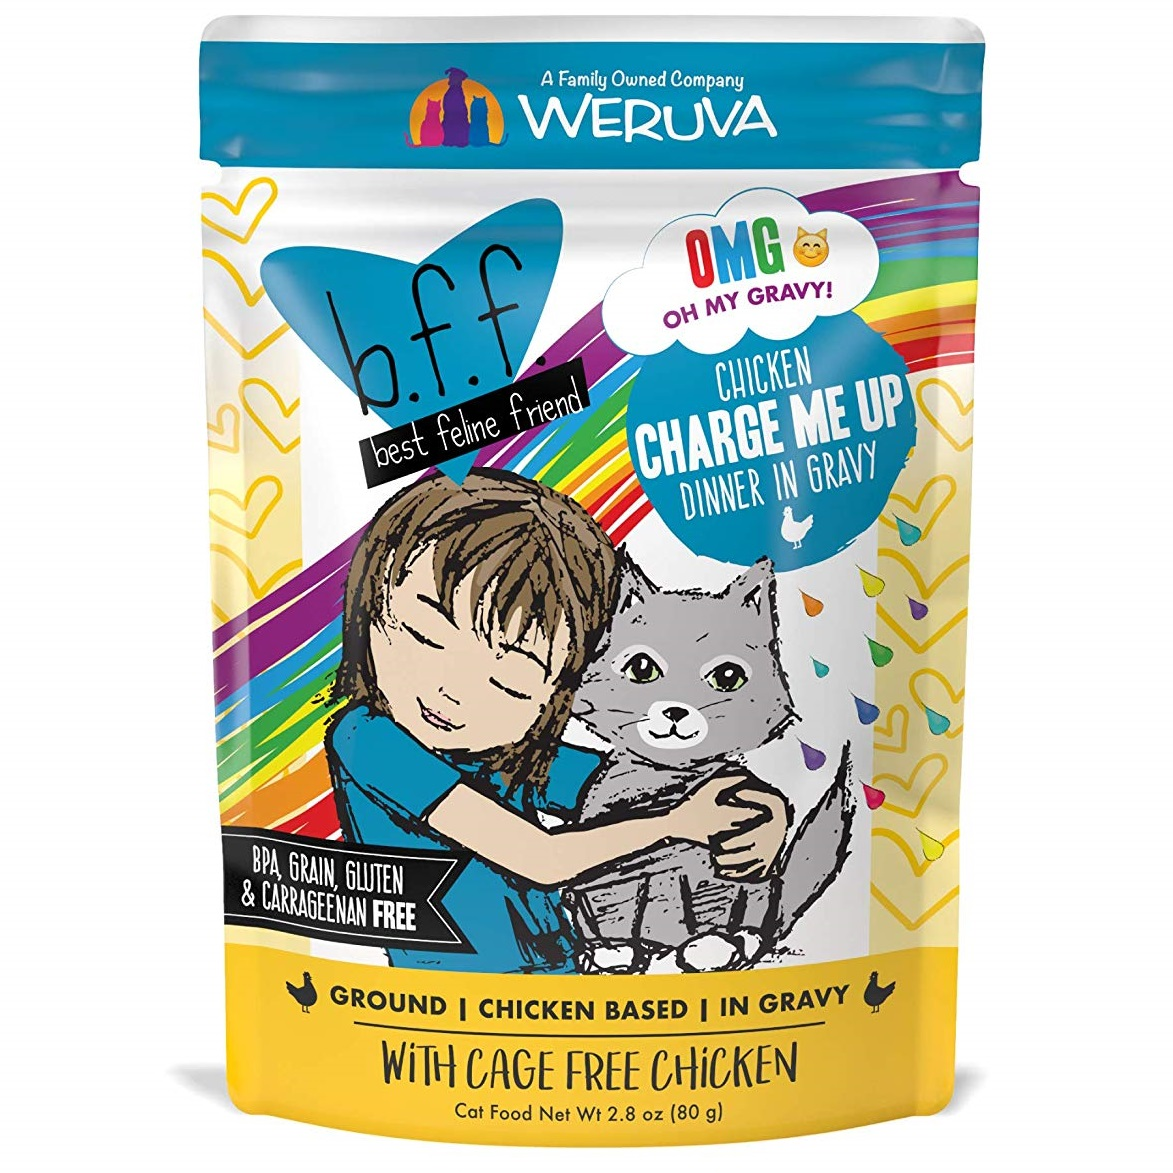 BFF Oh My Gravy! Charge Me Up! Chicken Dinner in Gravy Grain-Free Wet Cat Food, 3-oz pouch